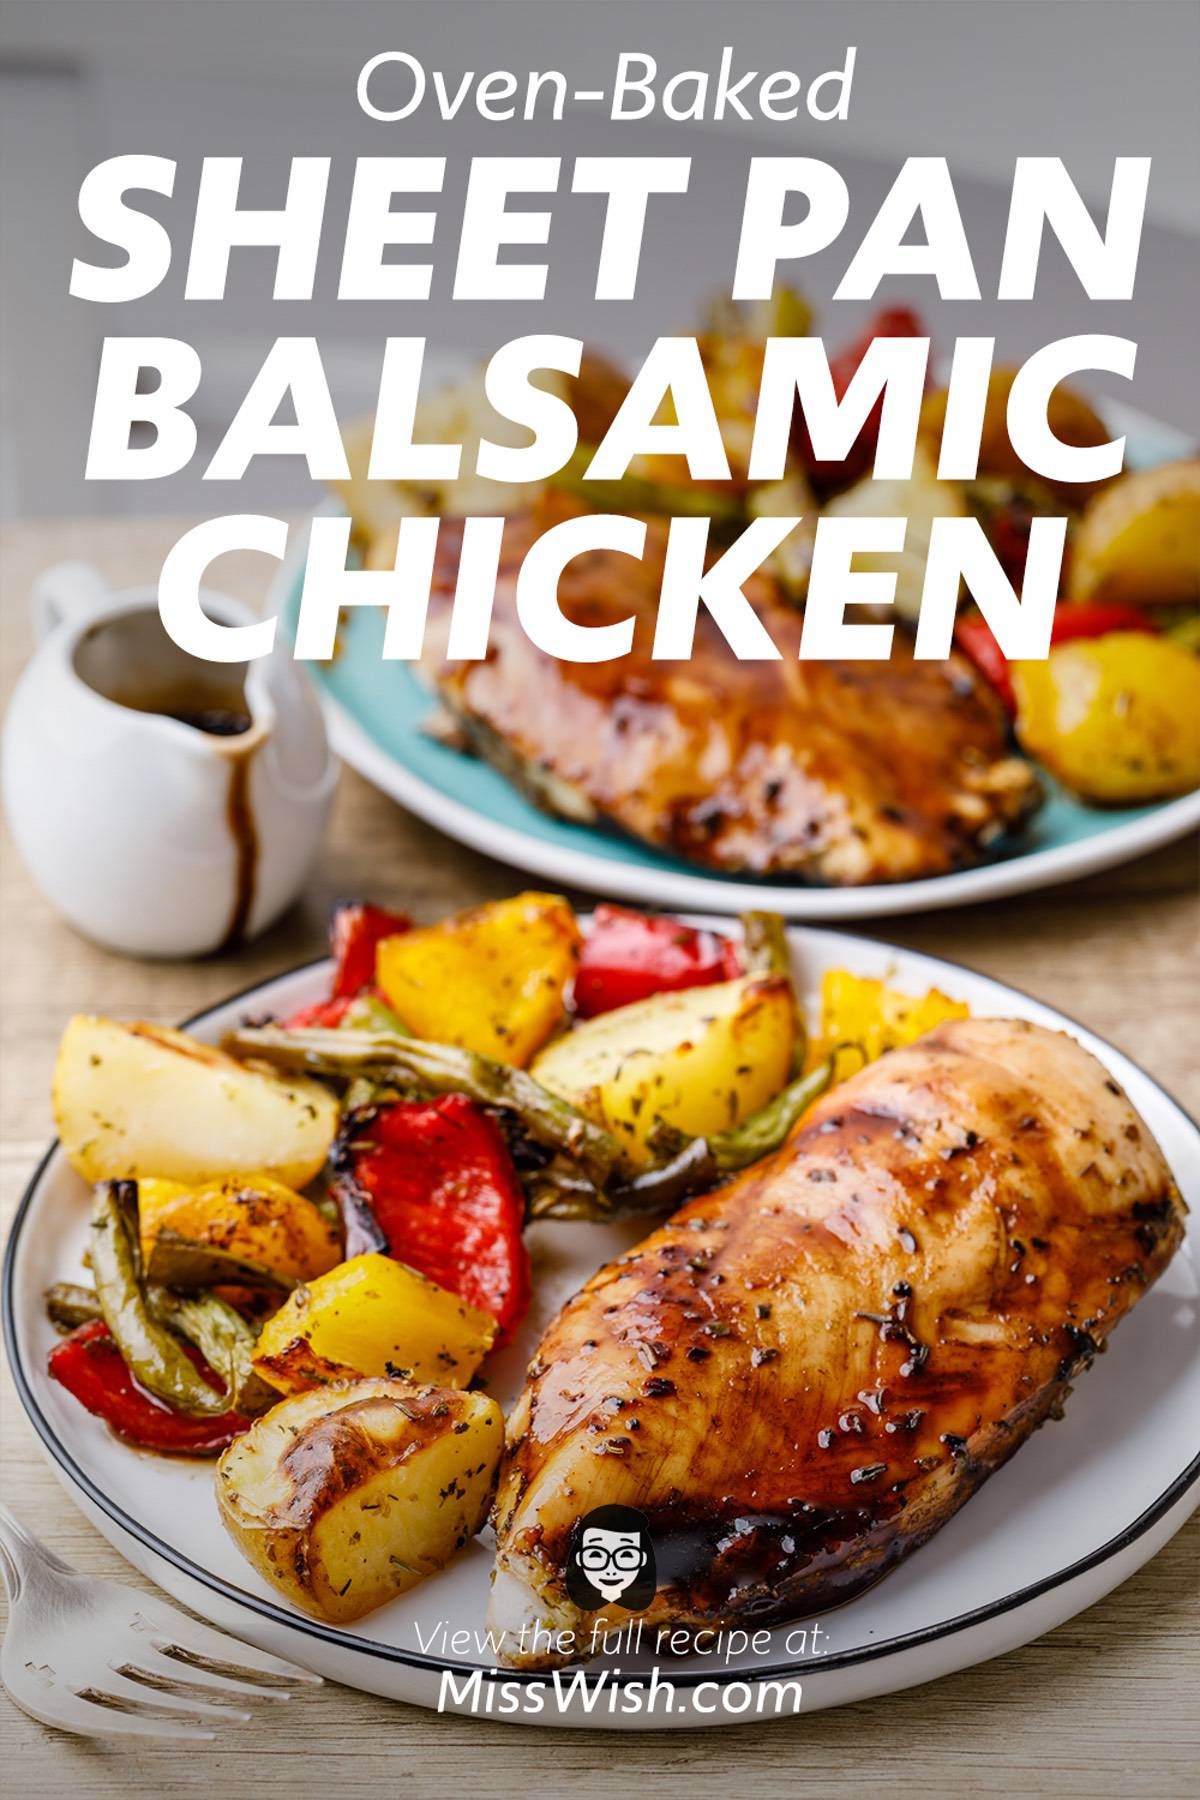 Oven-Baked Sheet Pan Balsamic Chicken for an Easy Meal